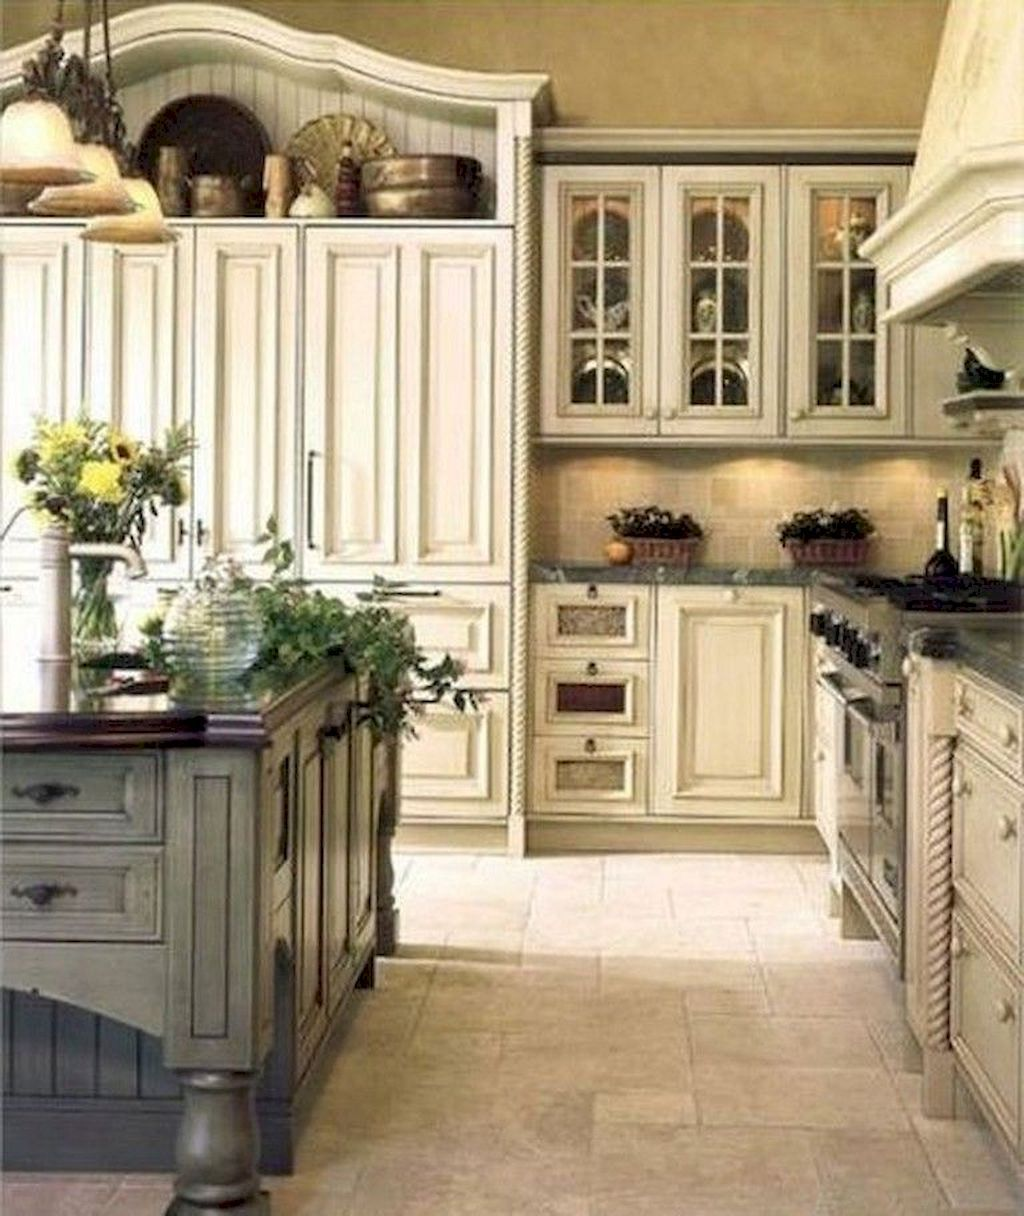 Do You Need Some Ideas To Start Decorating Your Kitchen